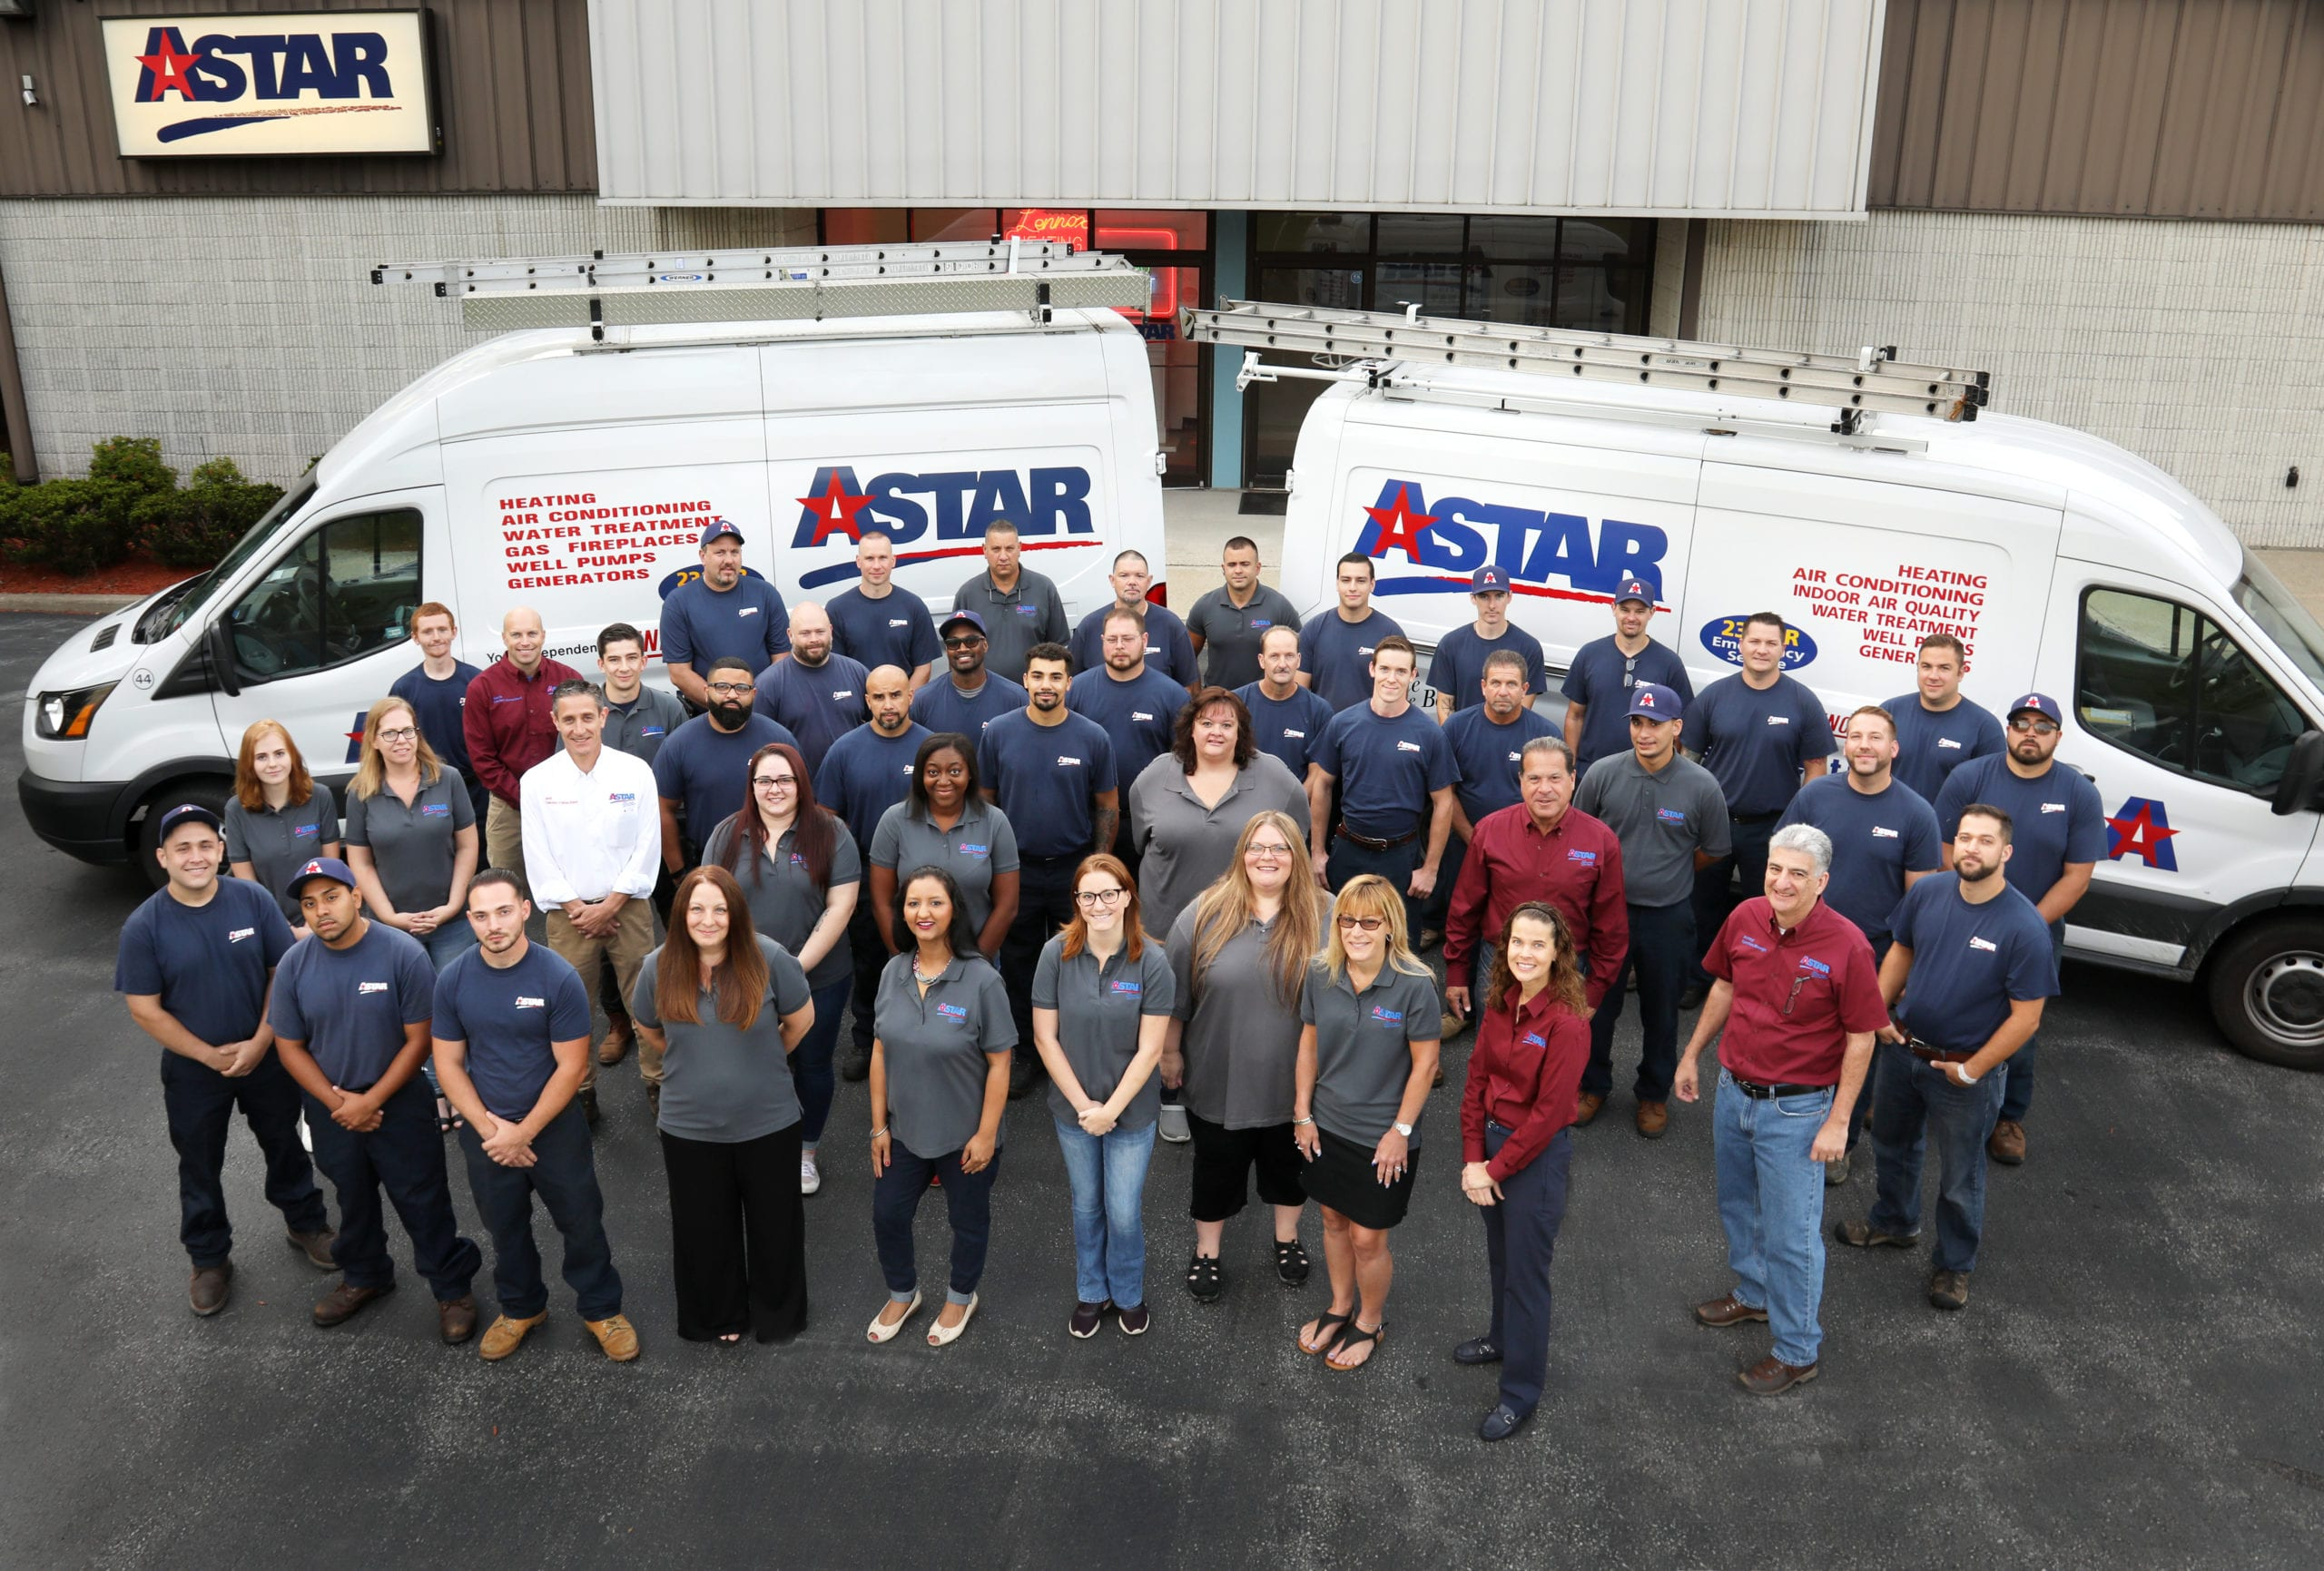 Astar Team Photo Smiling